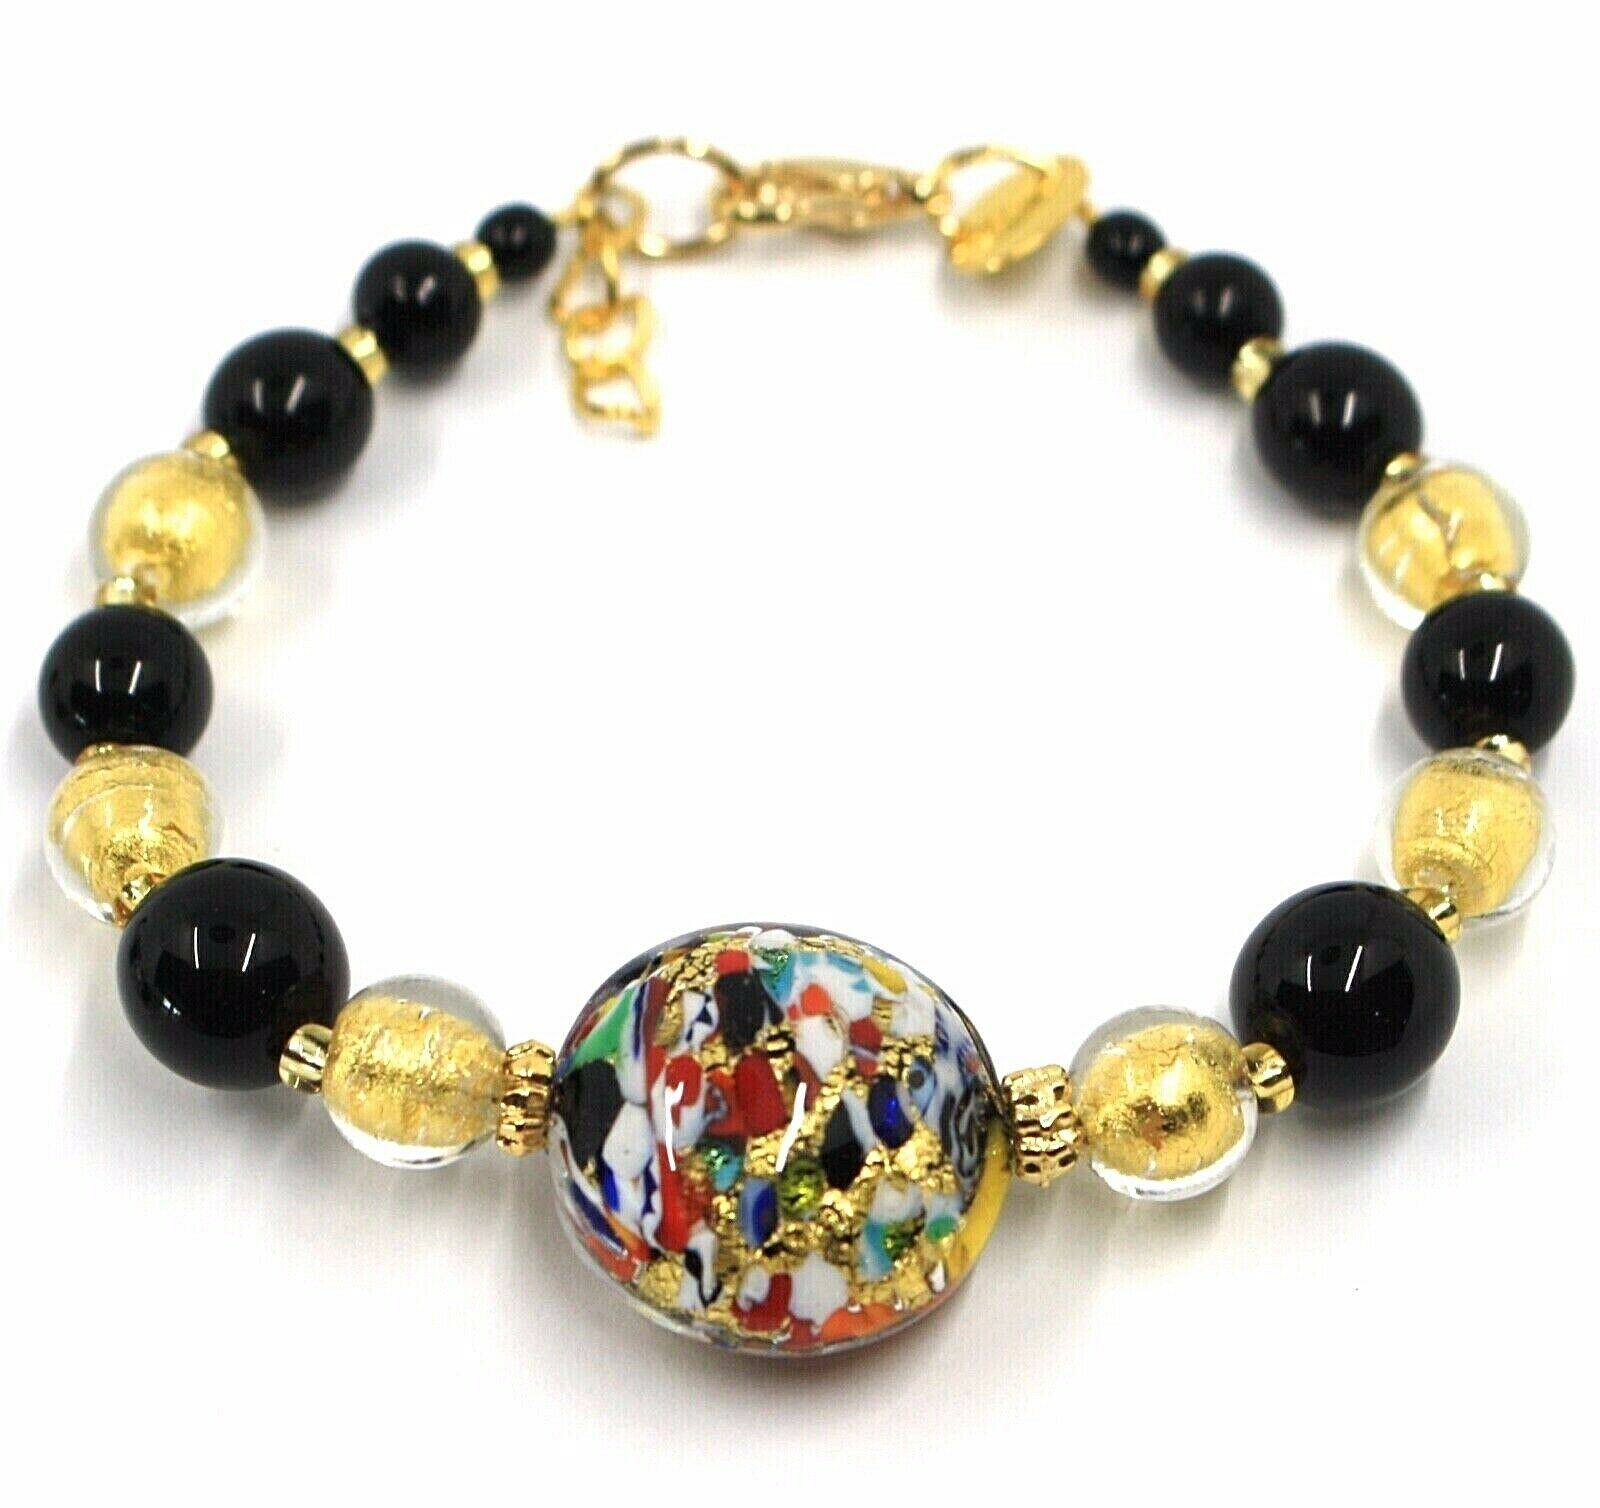 BRACELET MACULATE MULTI COLOR MURANO GLASS DISC, GOLD LEAF, MADE IN ITALY